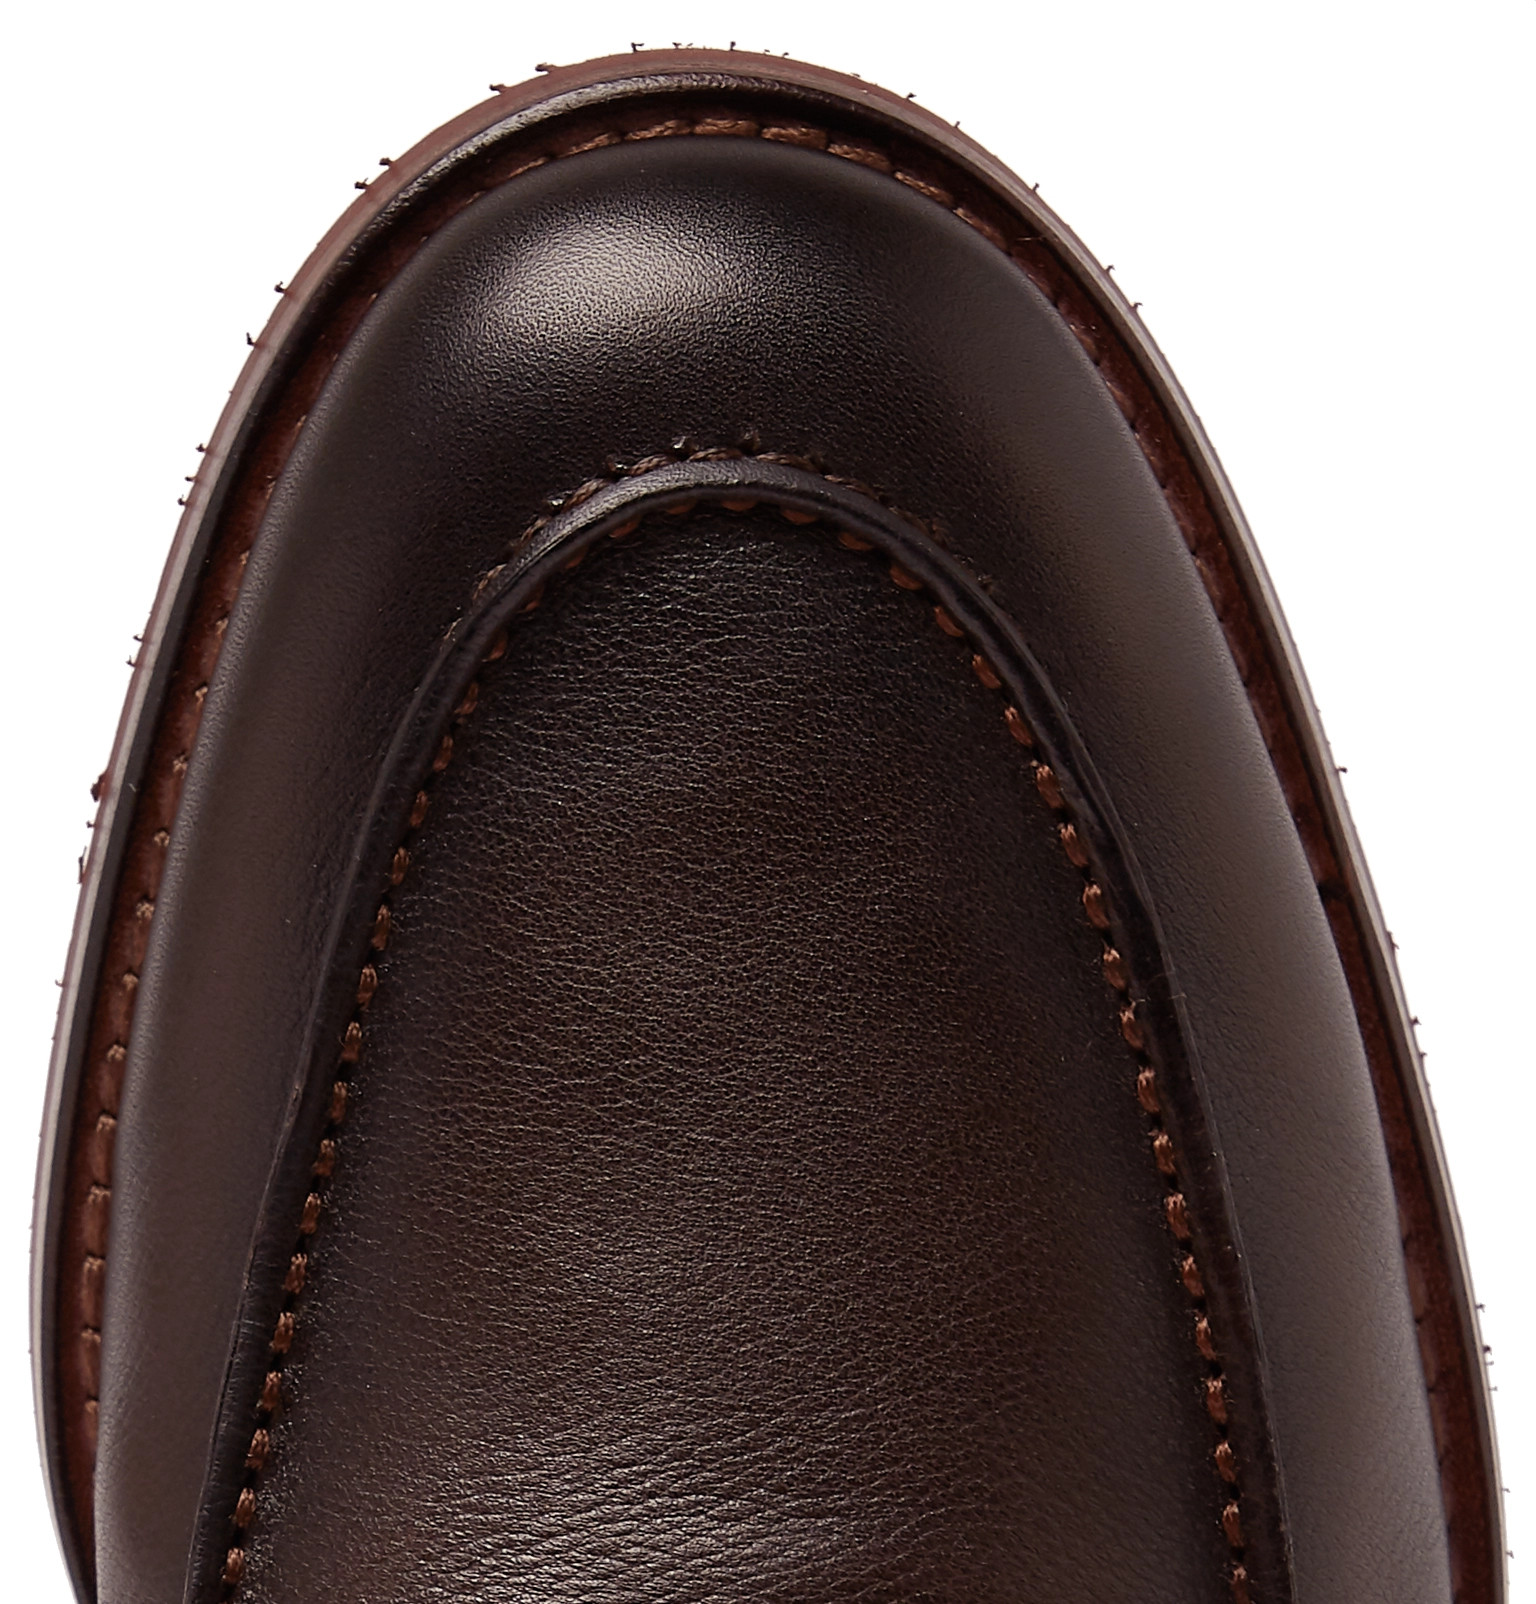 abd55a55af0 Loro Piana - City Life Full-Grain Leather Loafers